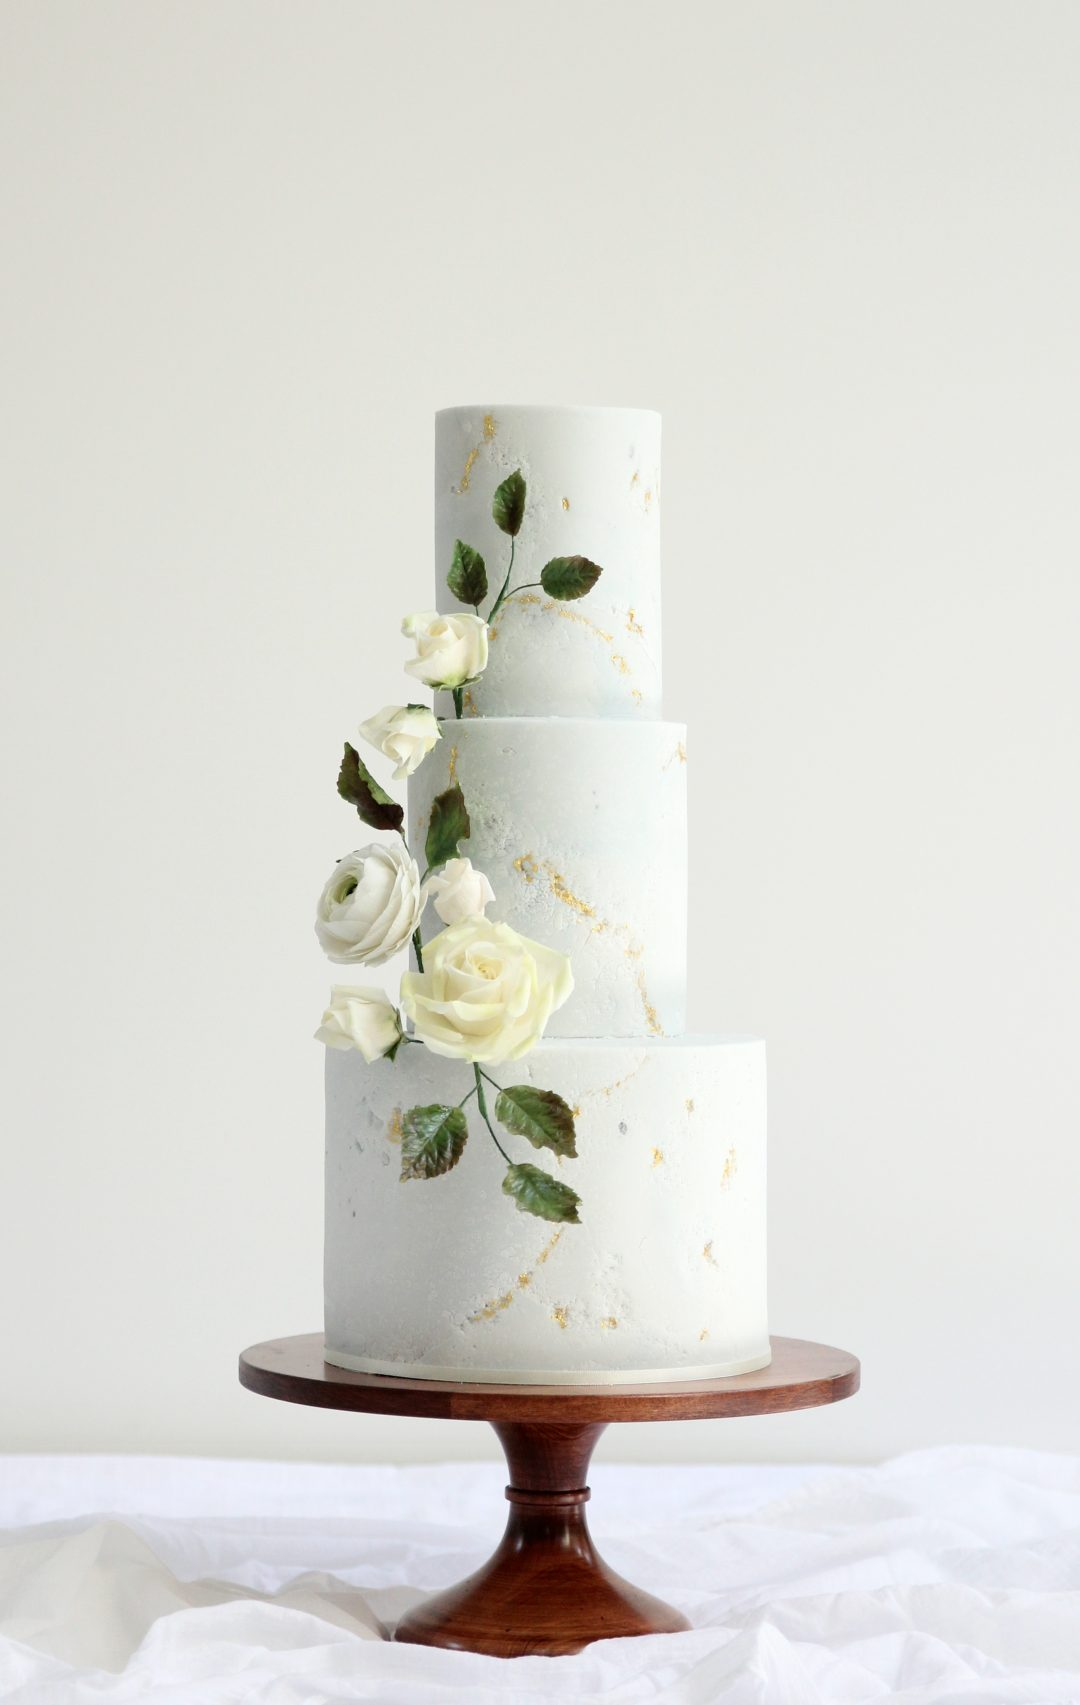 TEXTURE - Textured cakes are set to be huge this year. Top of the trend is that of stone-textured fondant cakes, with subtle marbling adding additional colour and textural interest.